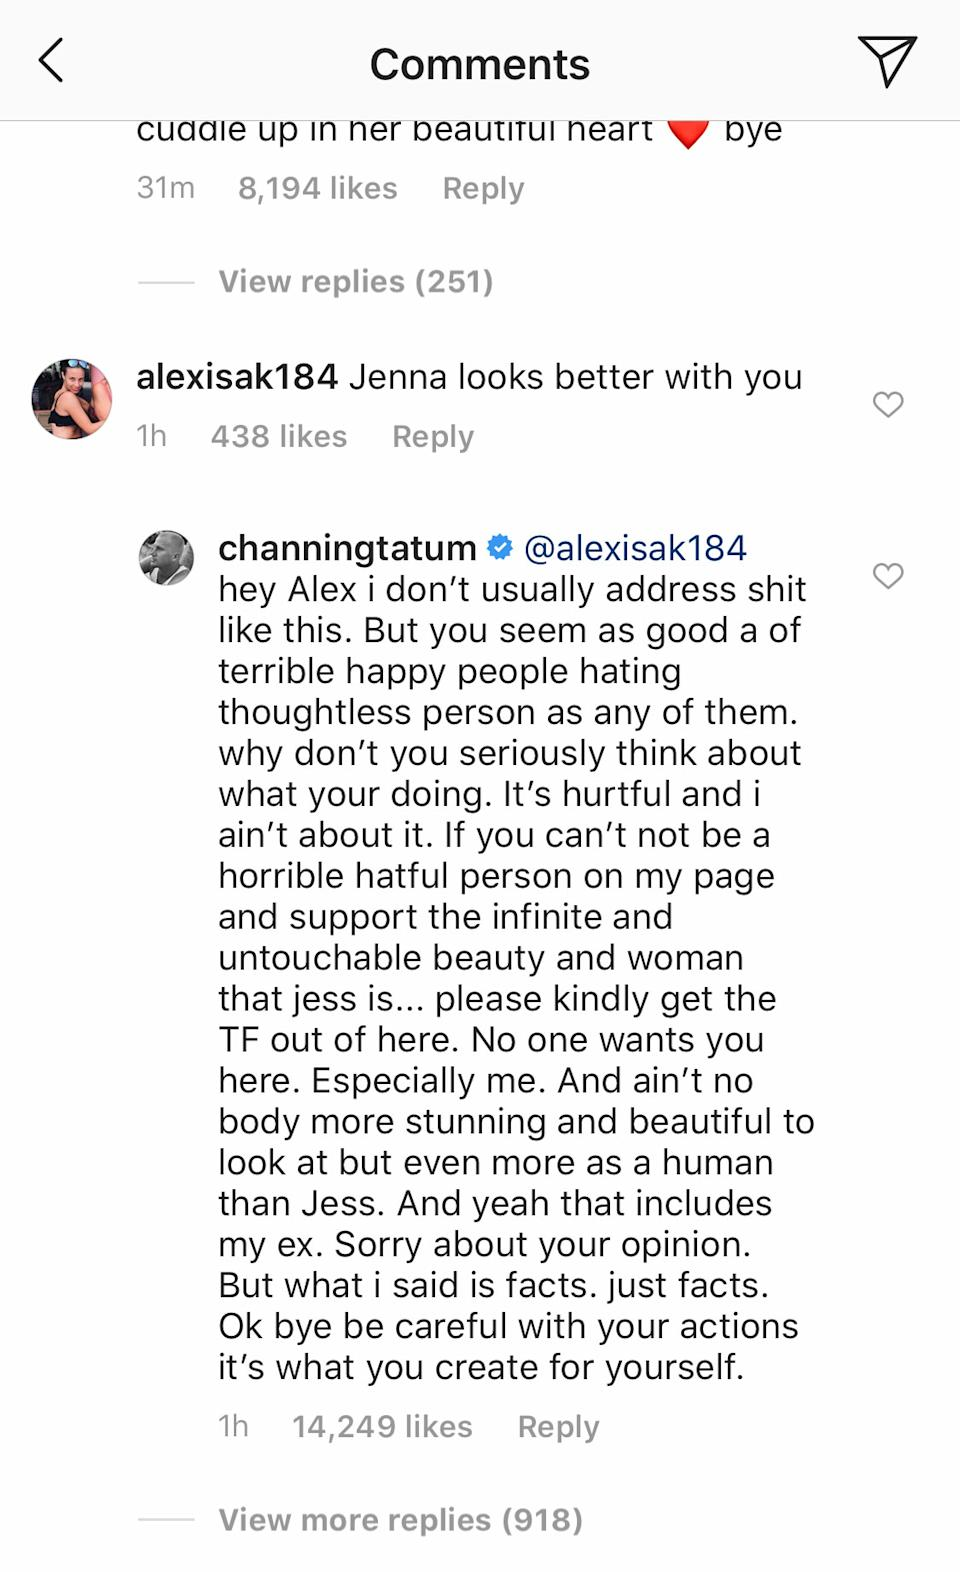 Channing's fiery reply has since been removed along with all comments on the post. Photo: Instagram/channingtatum.